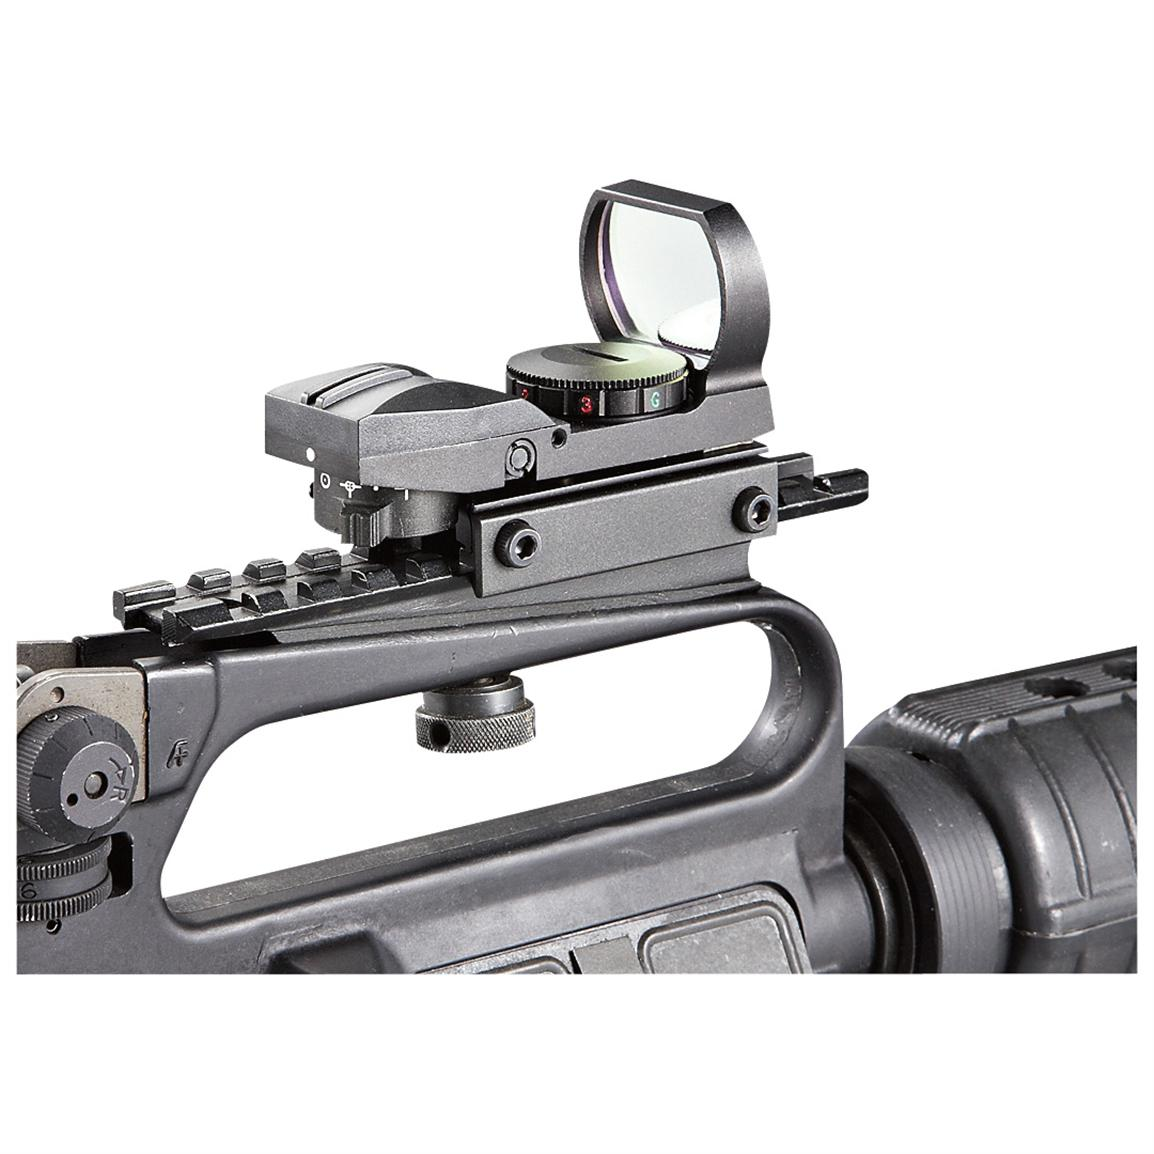 HQ-ISSUE Multi-Reticle Scope